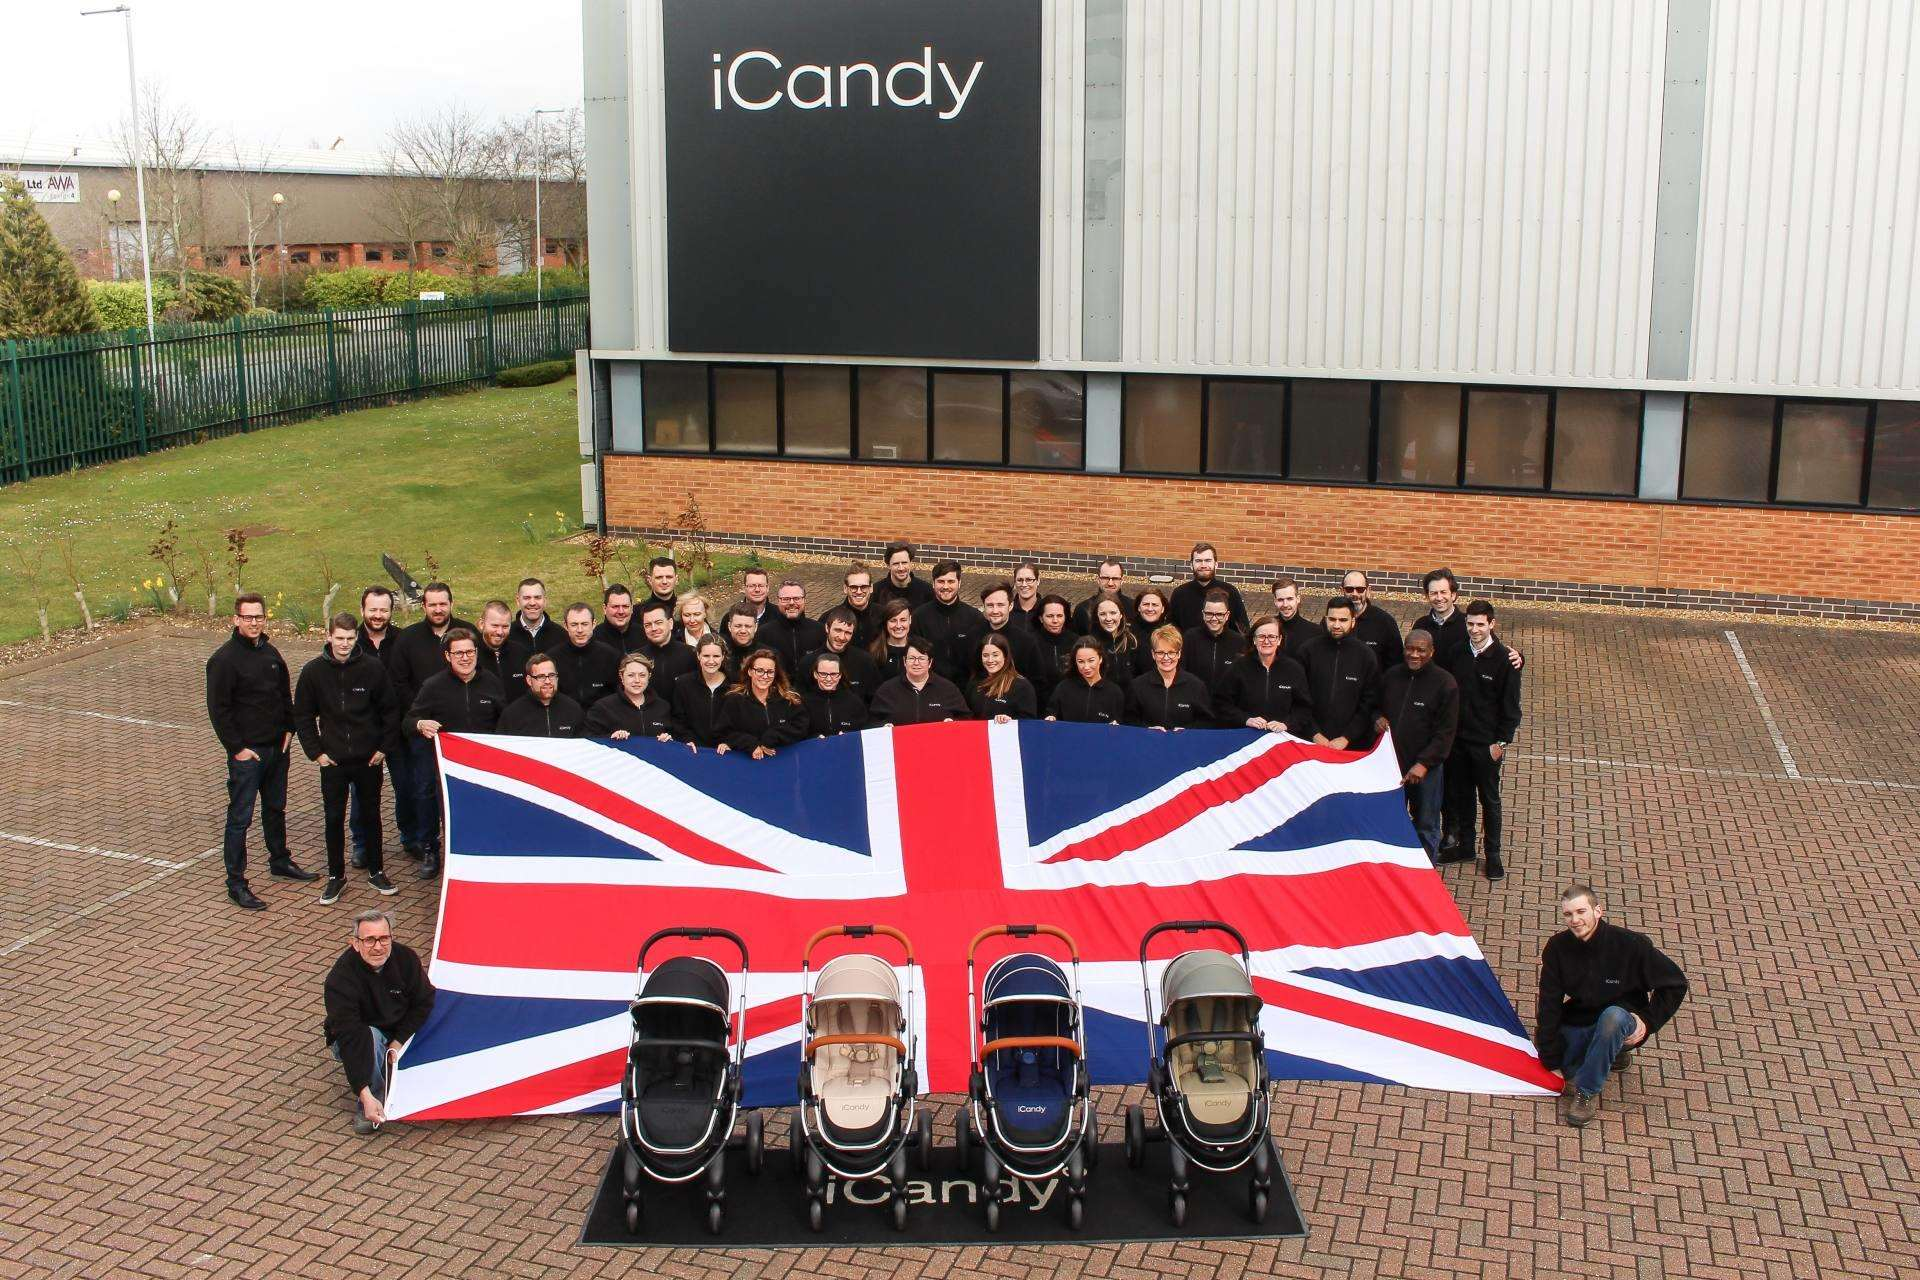 iCandy lower their prices!, The iCandy Team Queens Award Photo%, daily-dad, product-review%